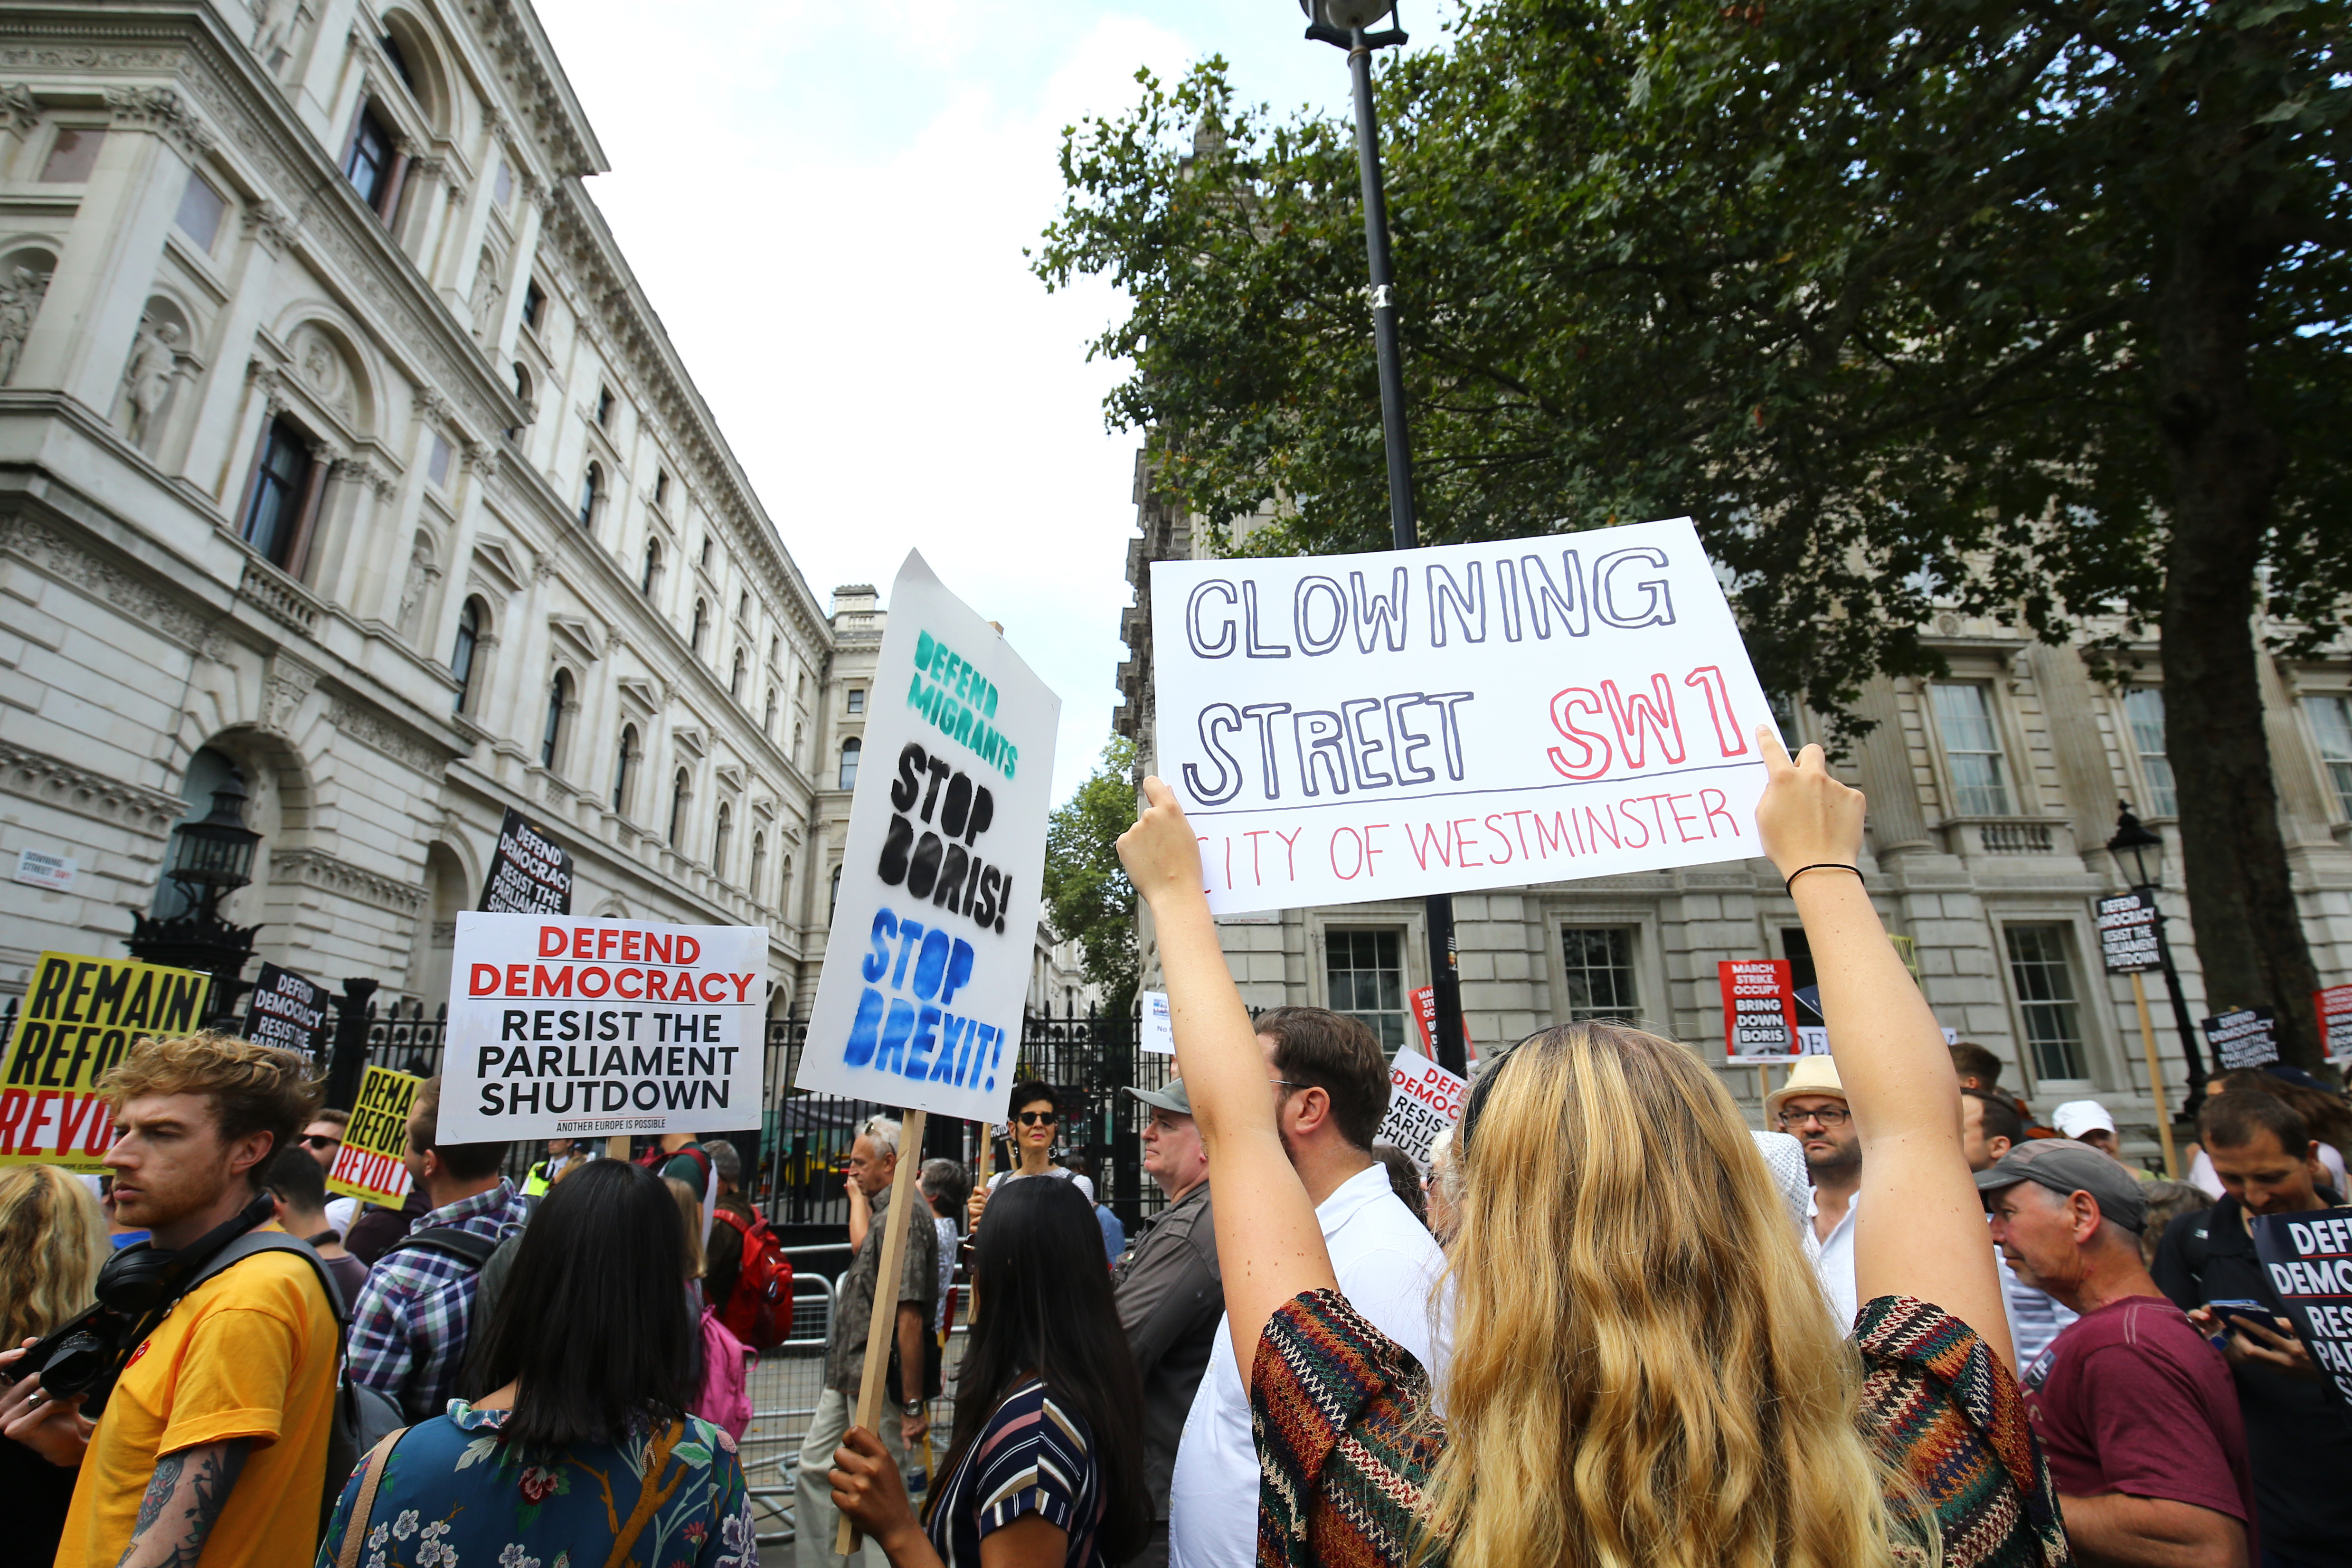 Protesters taking part in the 'Let Us Vote' day of action, organised by Another Europe is Possible campaign group in central London to demonstrate against Prime Minister Boris Johnson's decision to suspend Parliament for up to five weeks before a Queen's Speech on October 14. (Photo by Gareth Fuller/PA Images via Getty Images)